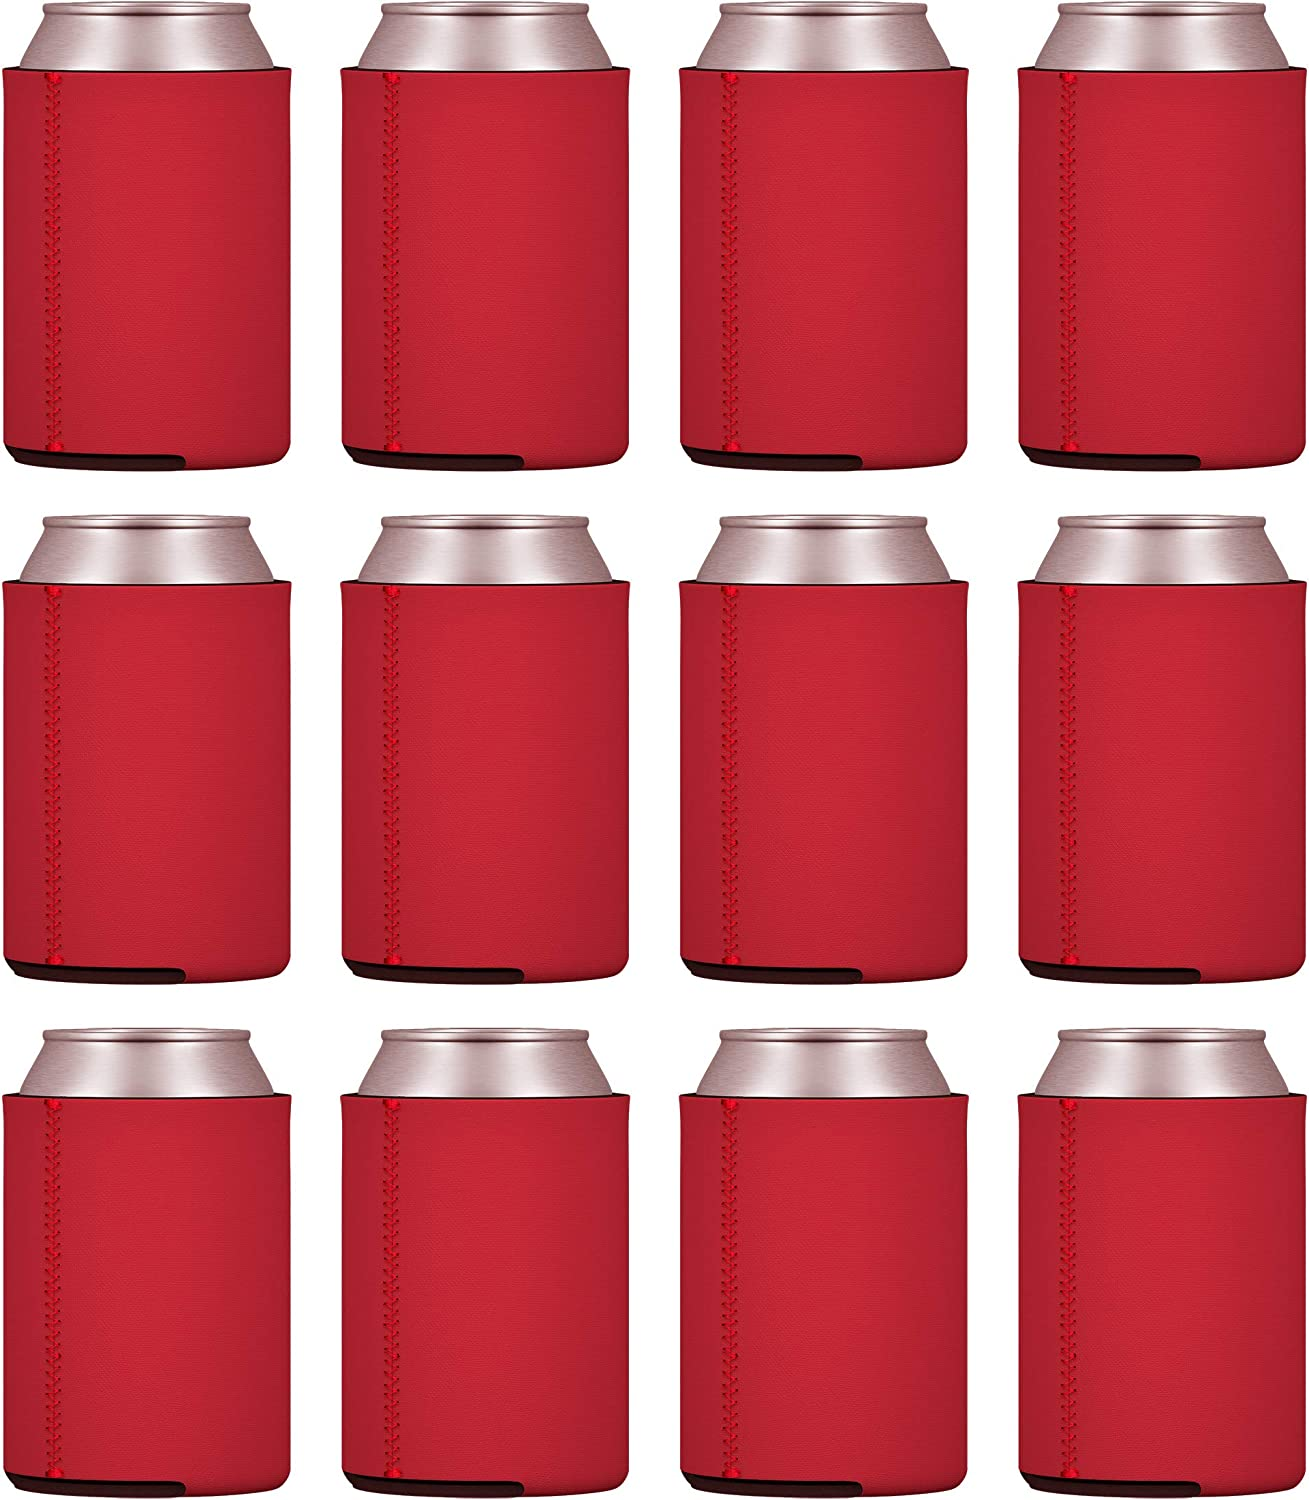 TahoeBay 12 Neoprene Can Sleeves for Standard 12 Ounce Cans Blank Beer Coolers (Red, 12)